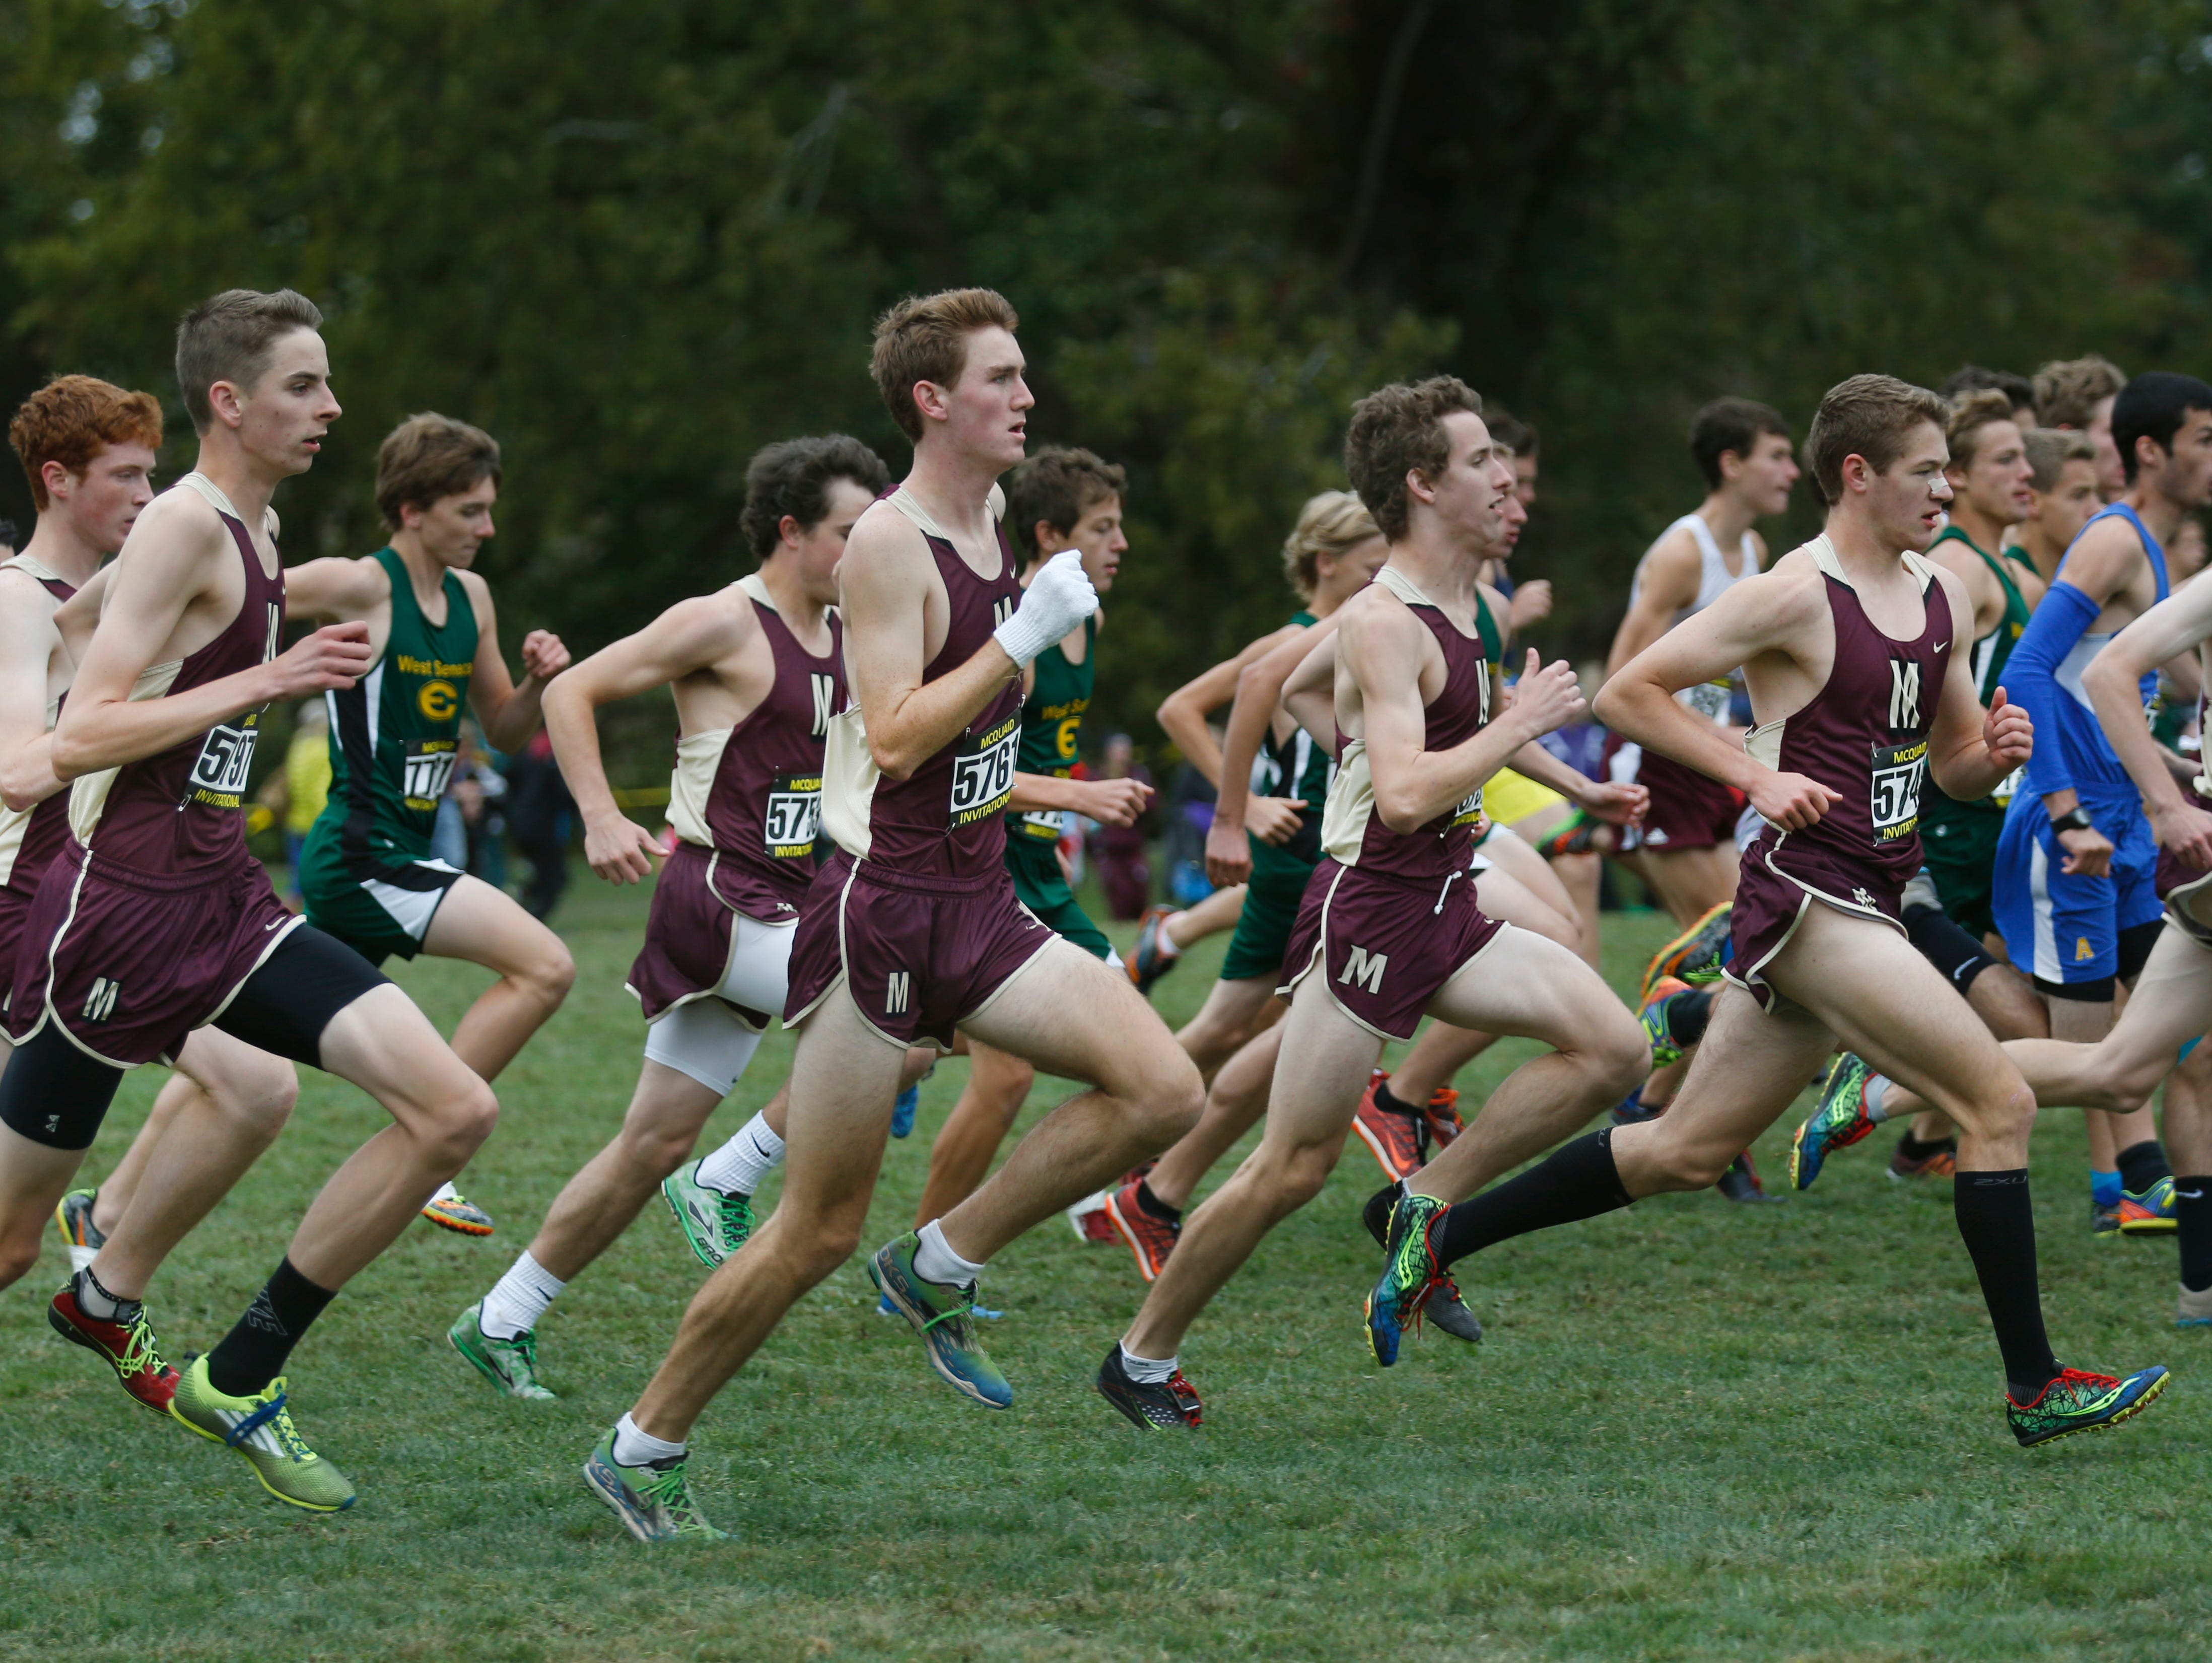 Pittsford Mendon runners start the Boys Varsity Seeded AA race during the McQuaid Invitational cross country meet at Genesee Valley Park.